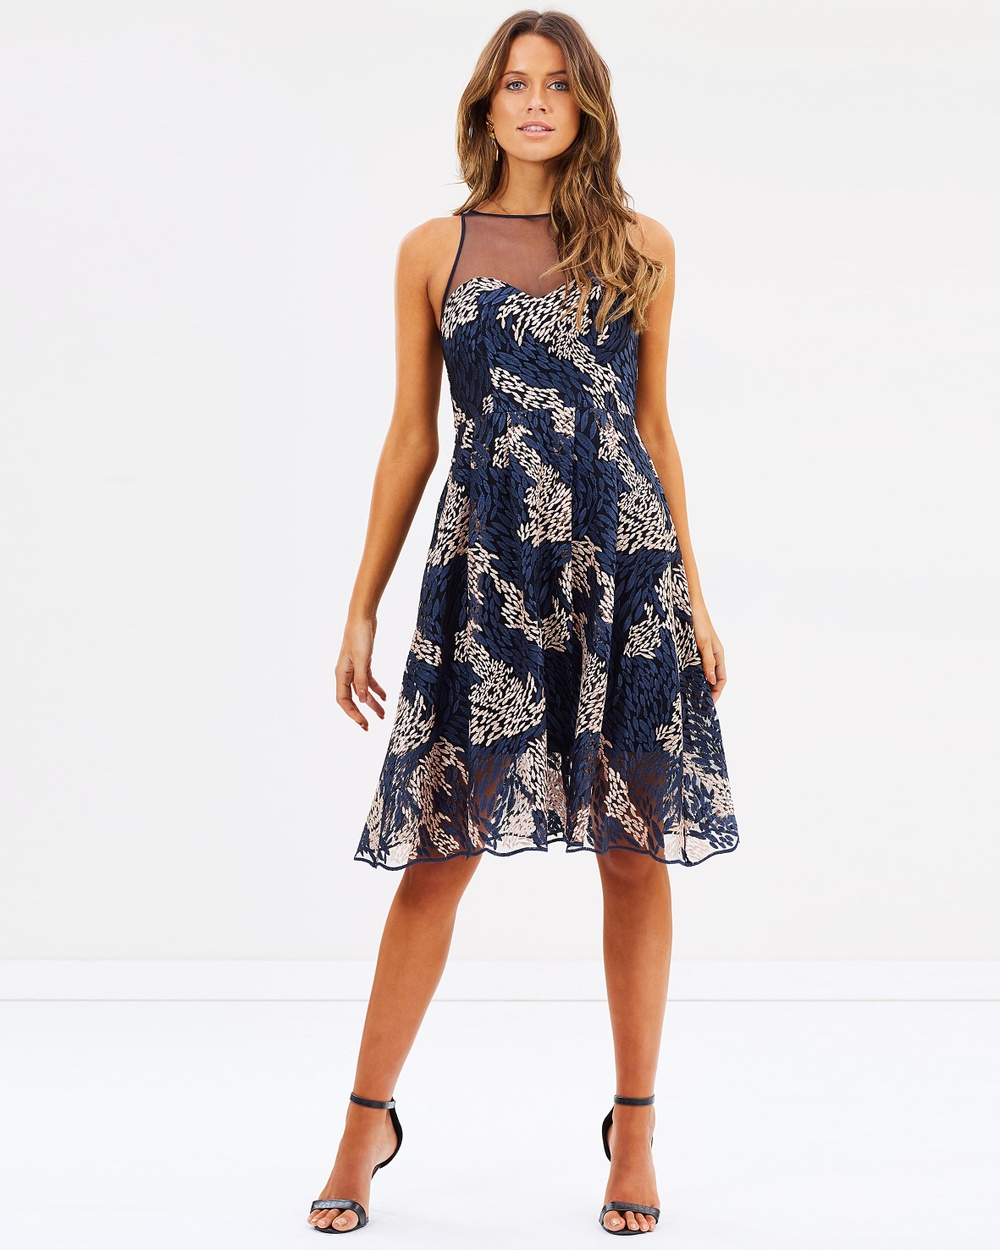 Grace & Hart Rozie Fit N Flare Dress Dresses Navy & Blush Rozie Fit N Flare Dress